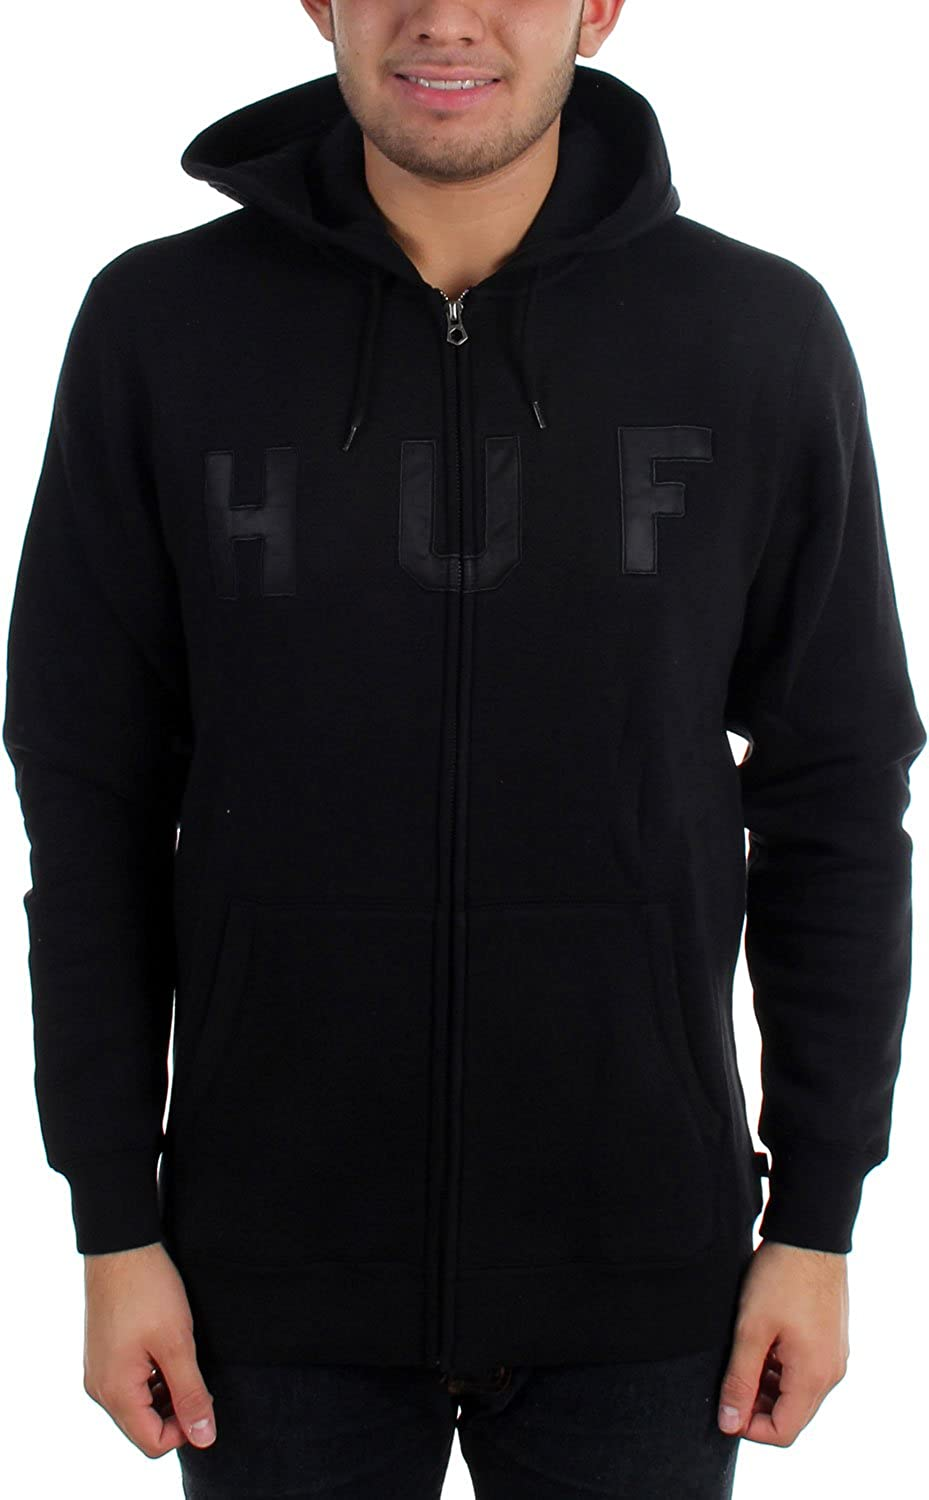 HUF Men's HUF Logo Zip Up Hoodie инфлюцид капли 30мл